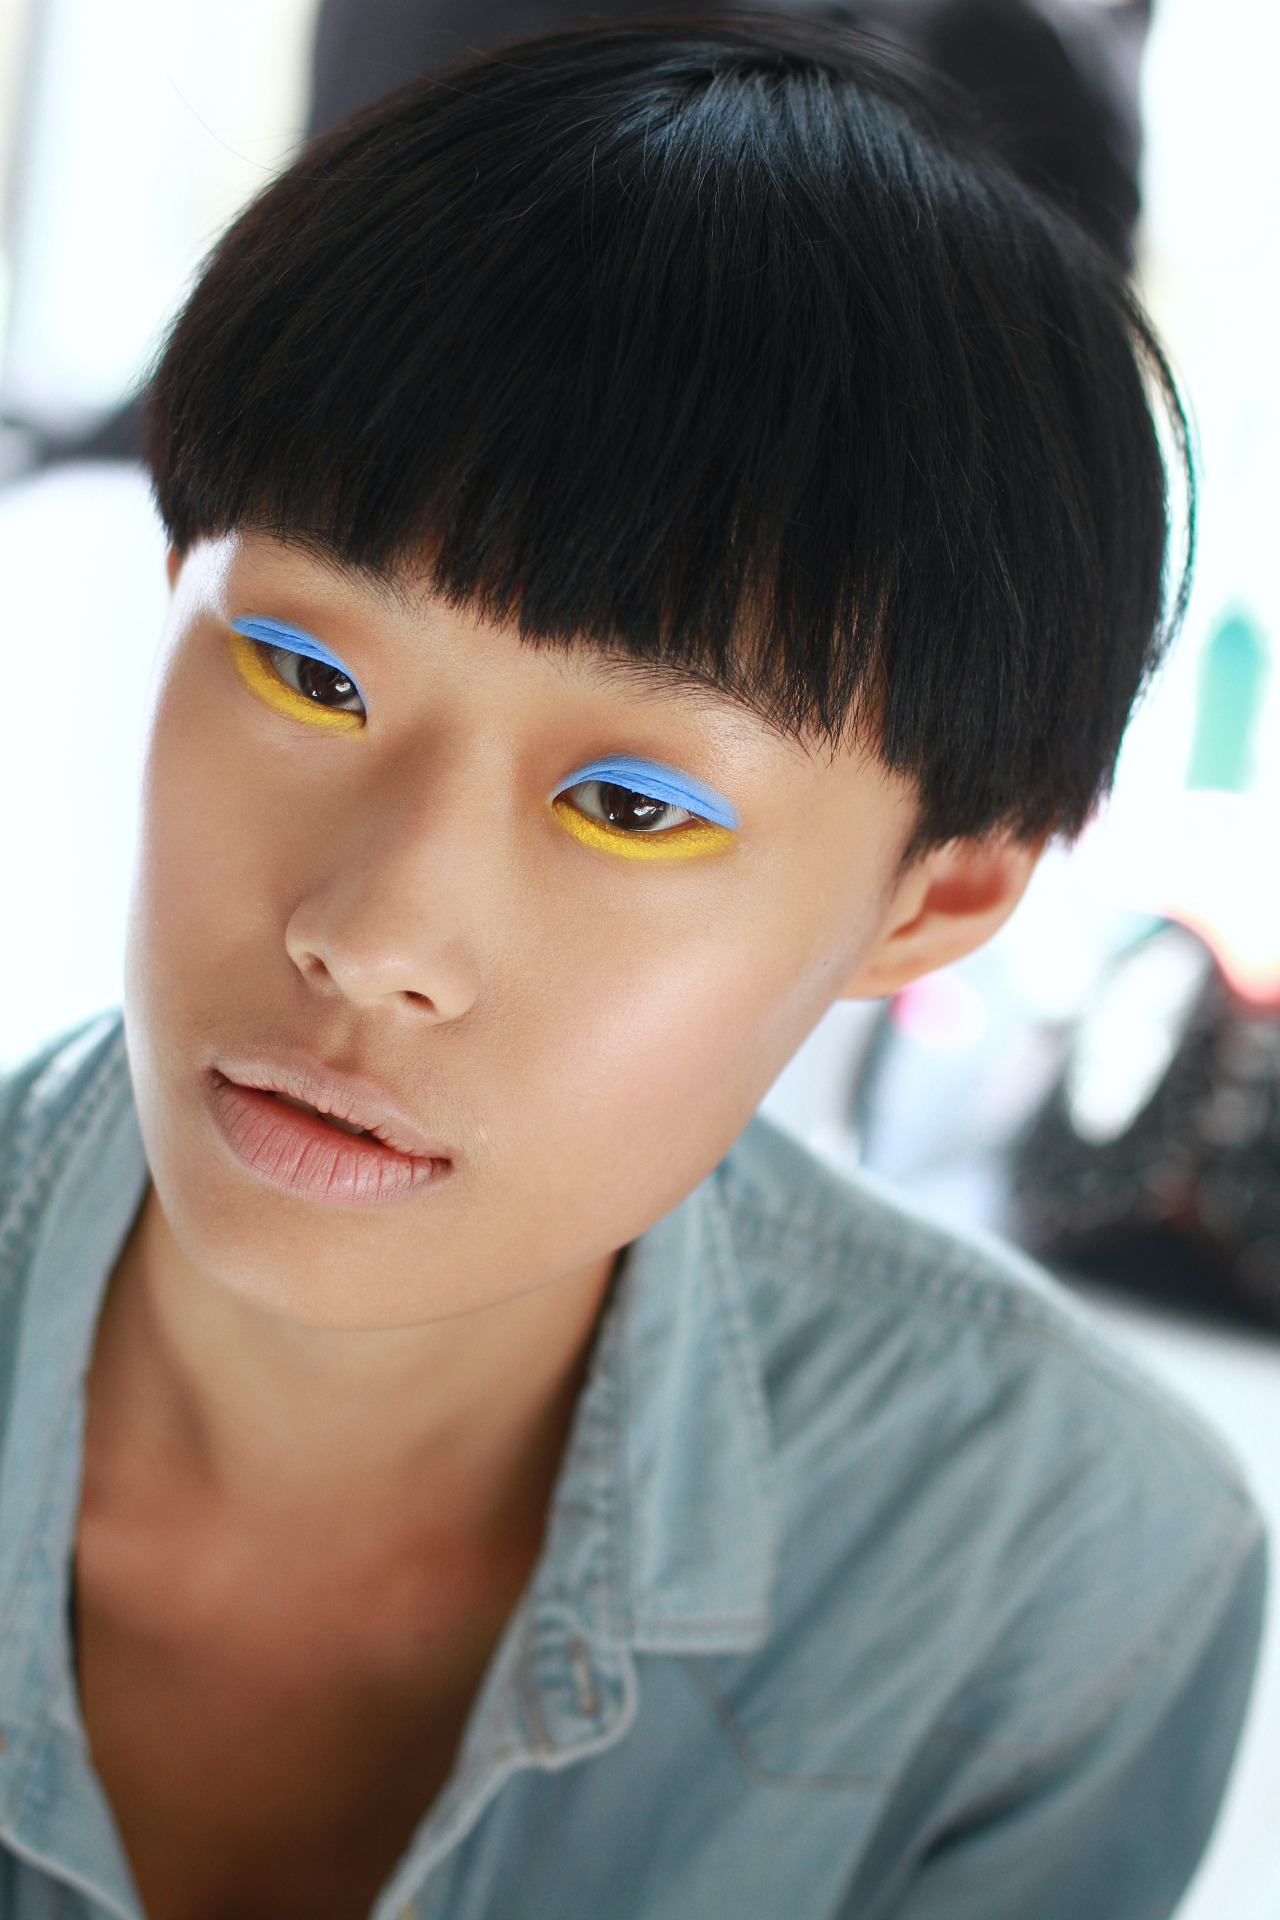 Backstage at  Delpozo  #NYFW.    blue + yellow lines   Hair by  Morrocanoil , makeup by  MAC .     Image c/o Rachel Scroggins ( The Greyest Ghost ) for Cult of Pretty